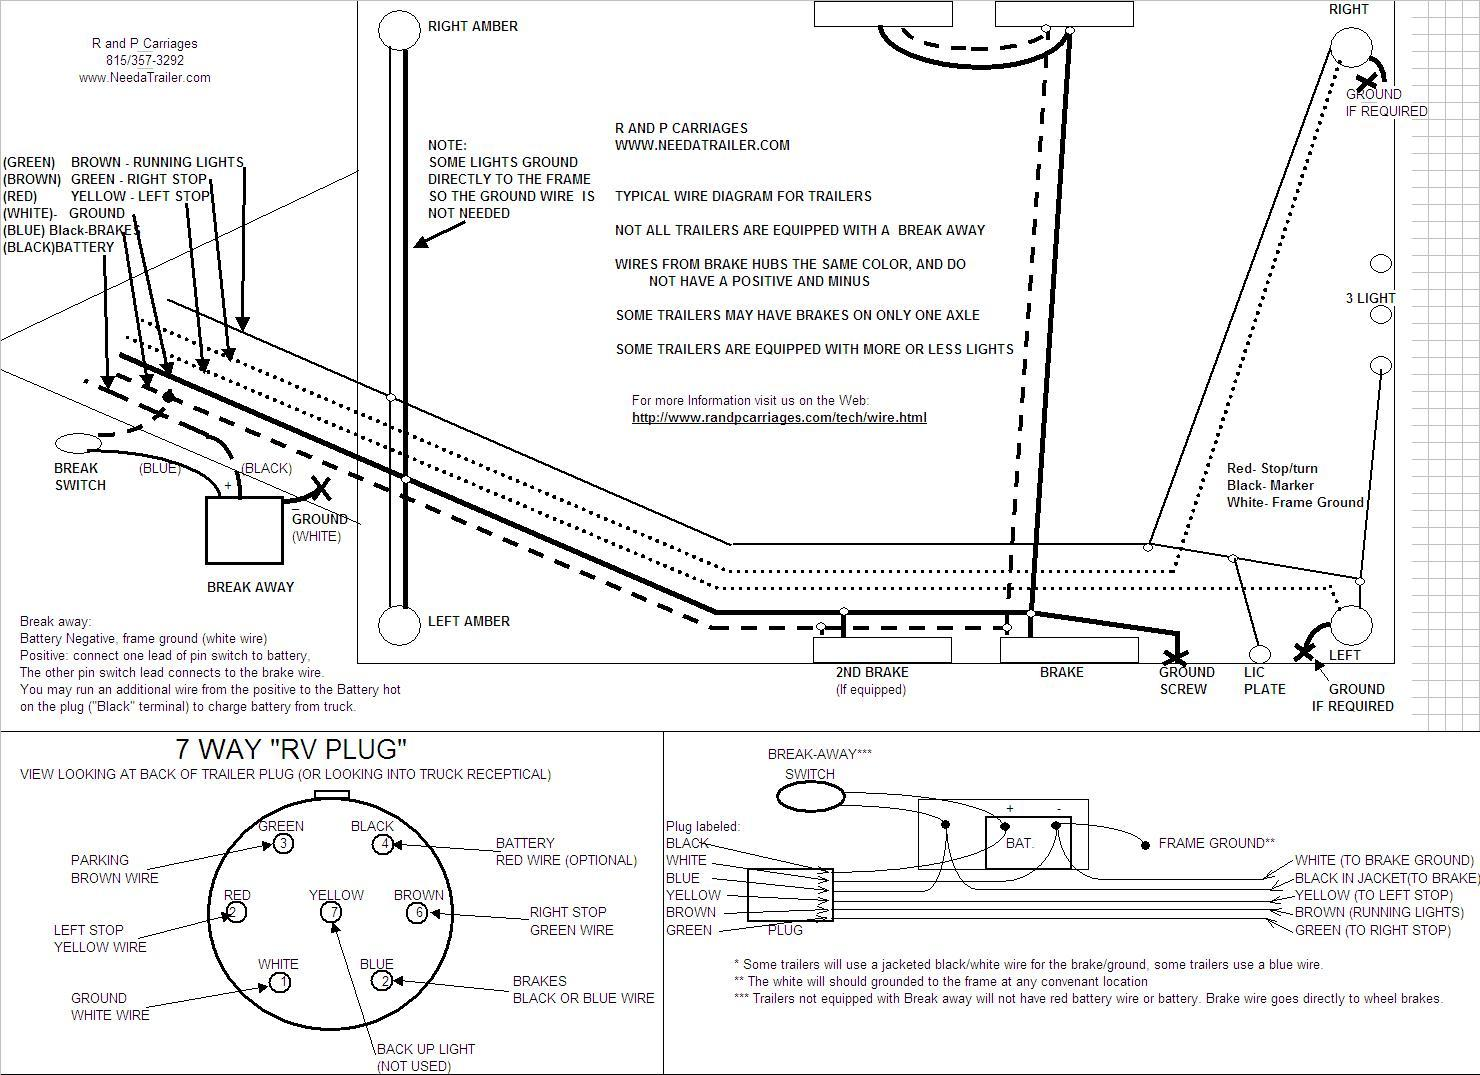 Electric Brake Controller Wiring Diagram from www.needatrailer.com